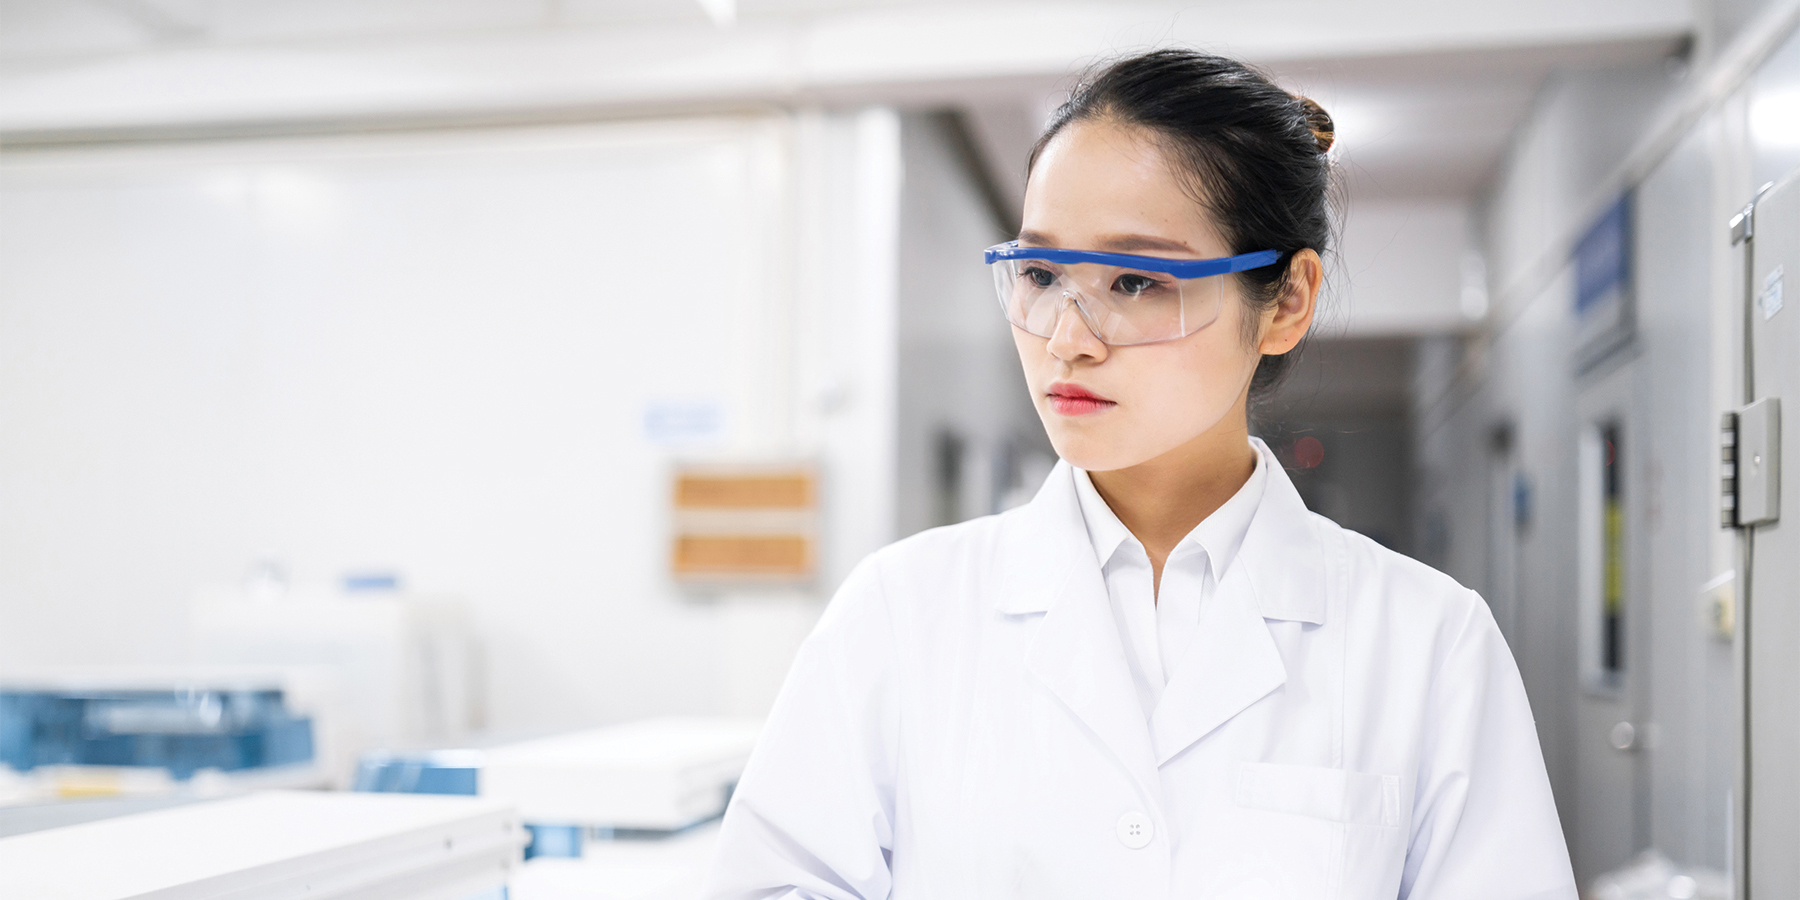 Health and Safety Compliance for the Research Laboratory